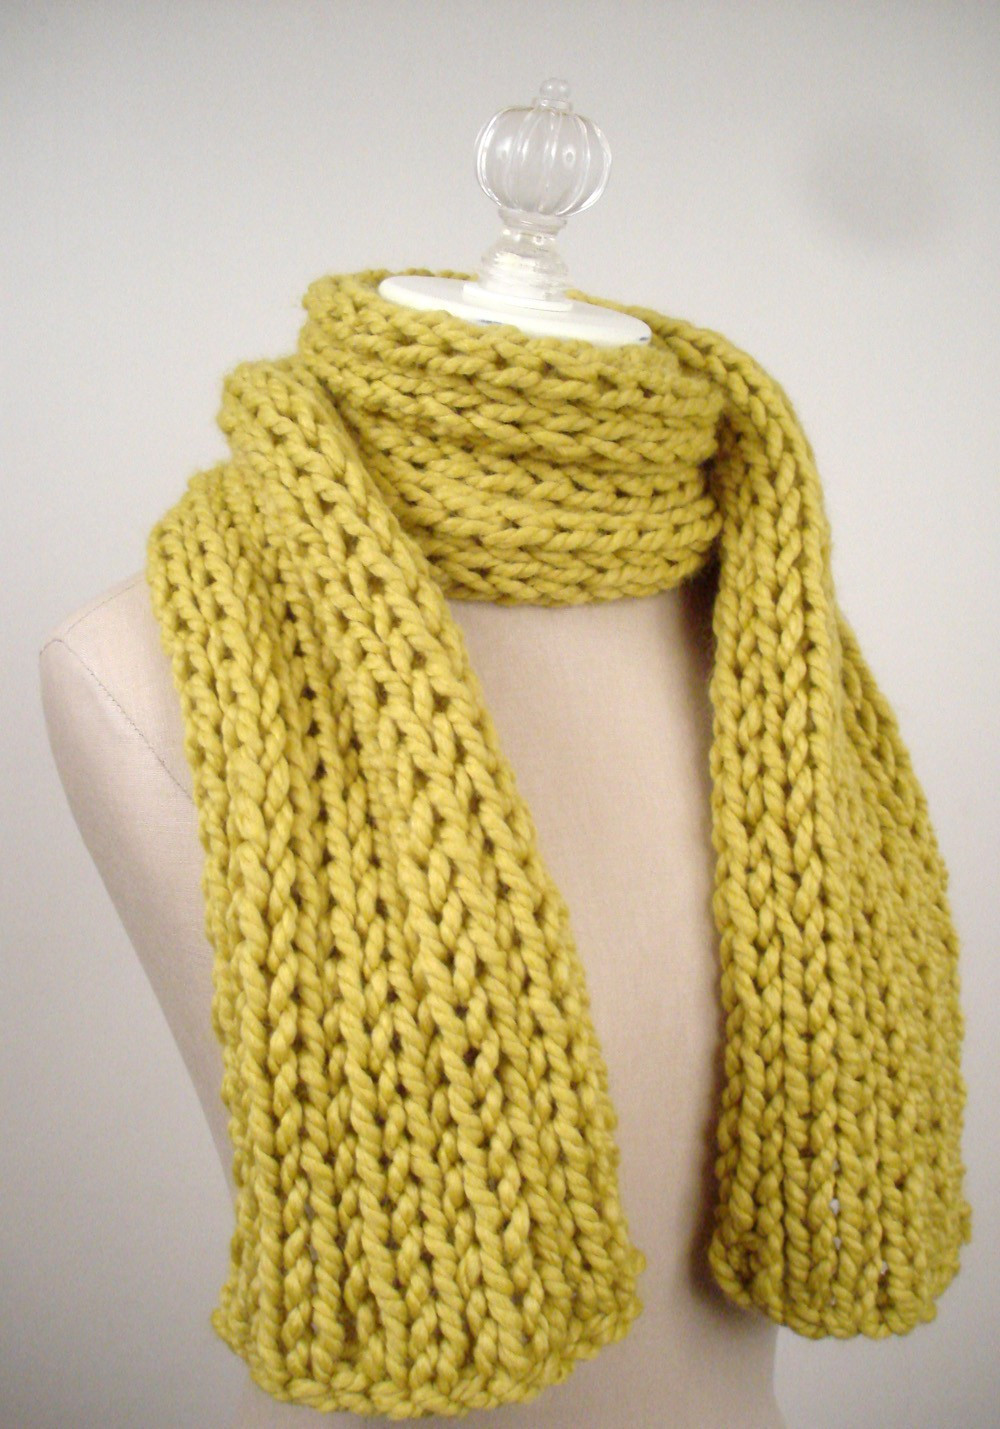 Lovely Knitting Patterns Scarf Beginners Free Knitting Patterns for Beginners Of New 40 Models Free Knitting Patterns for Beginners